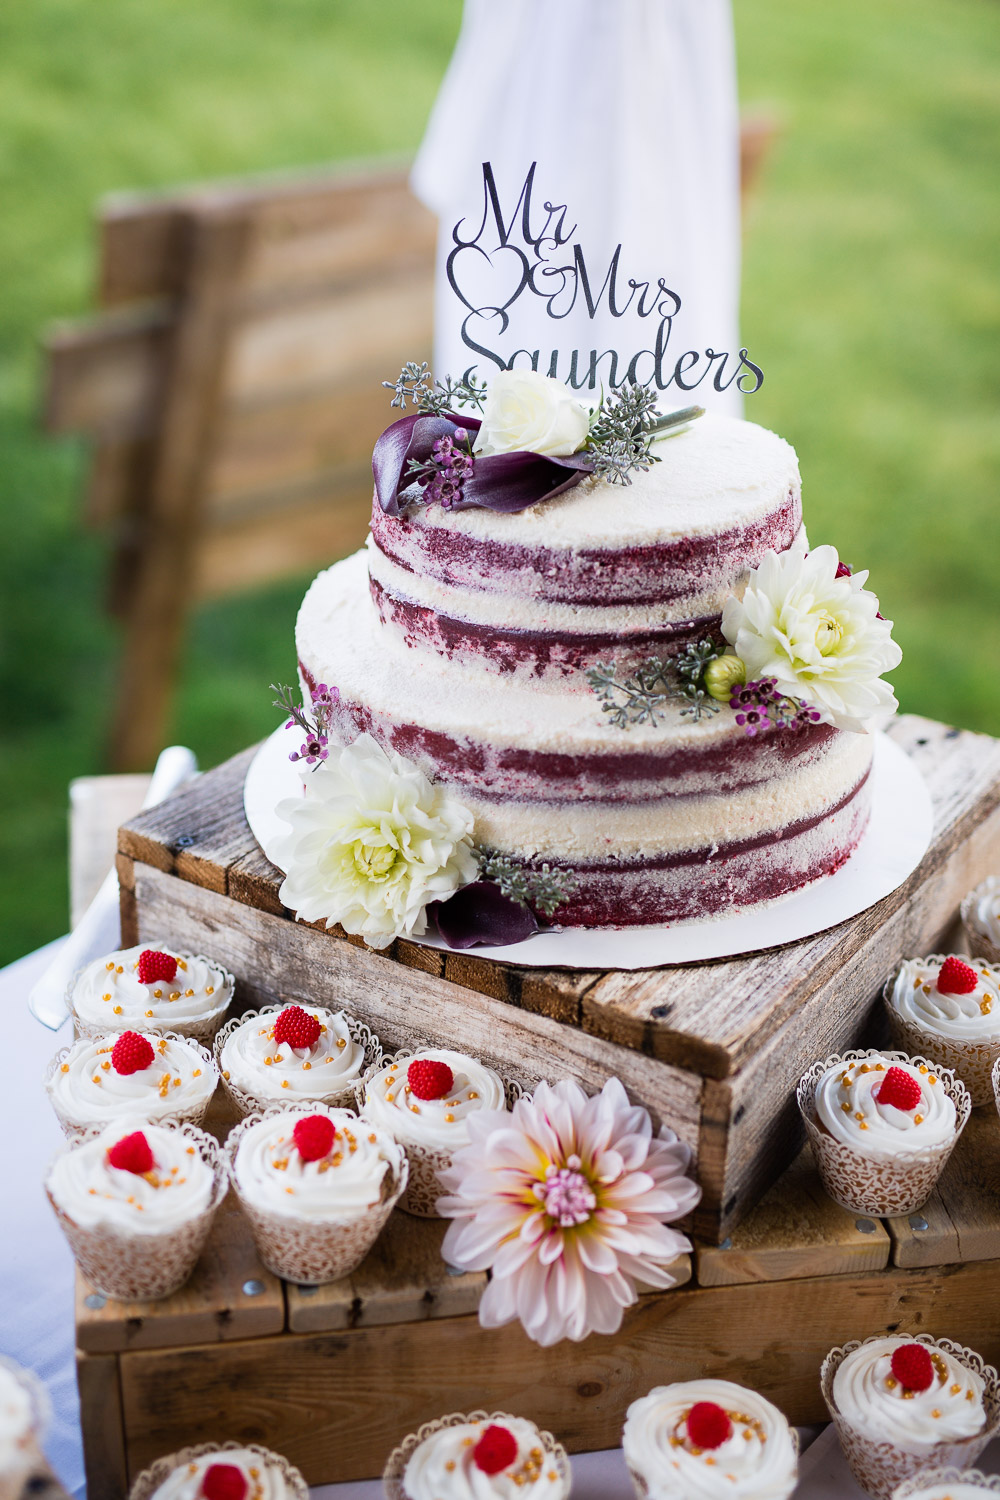 Professional Wedding Cakes and Desserts